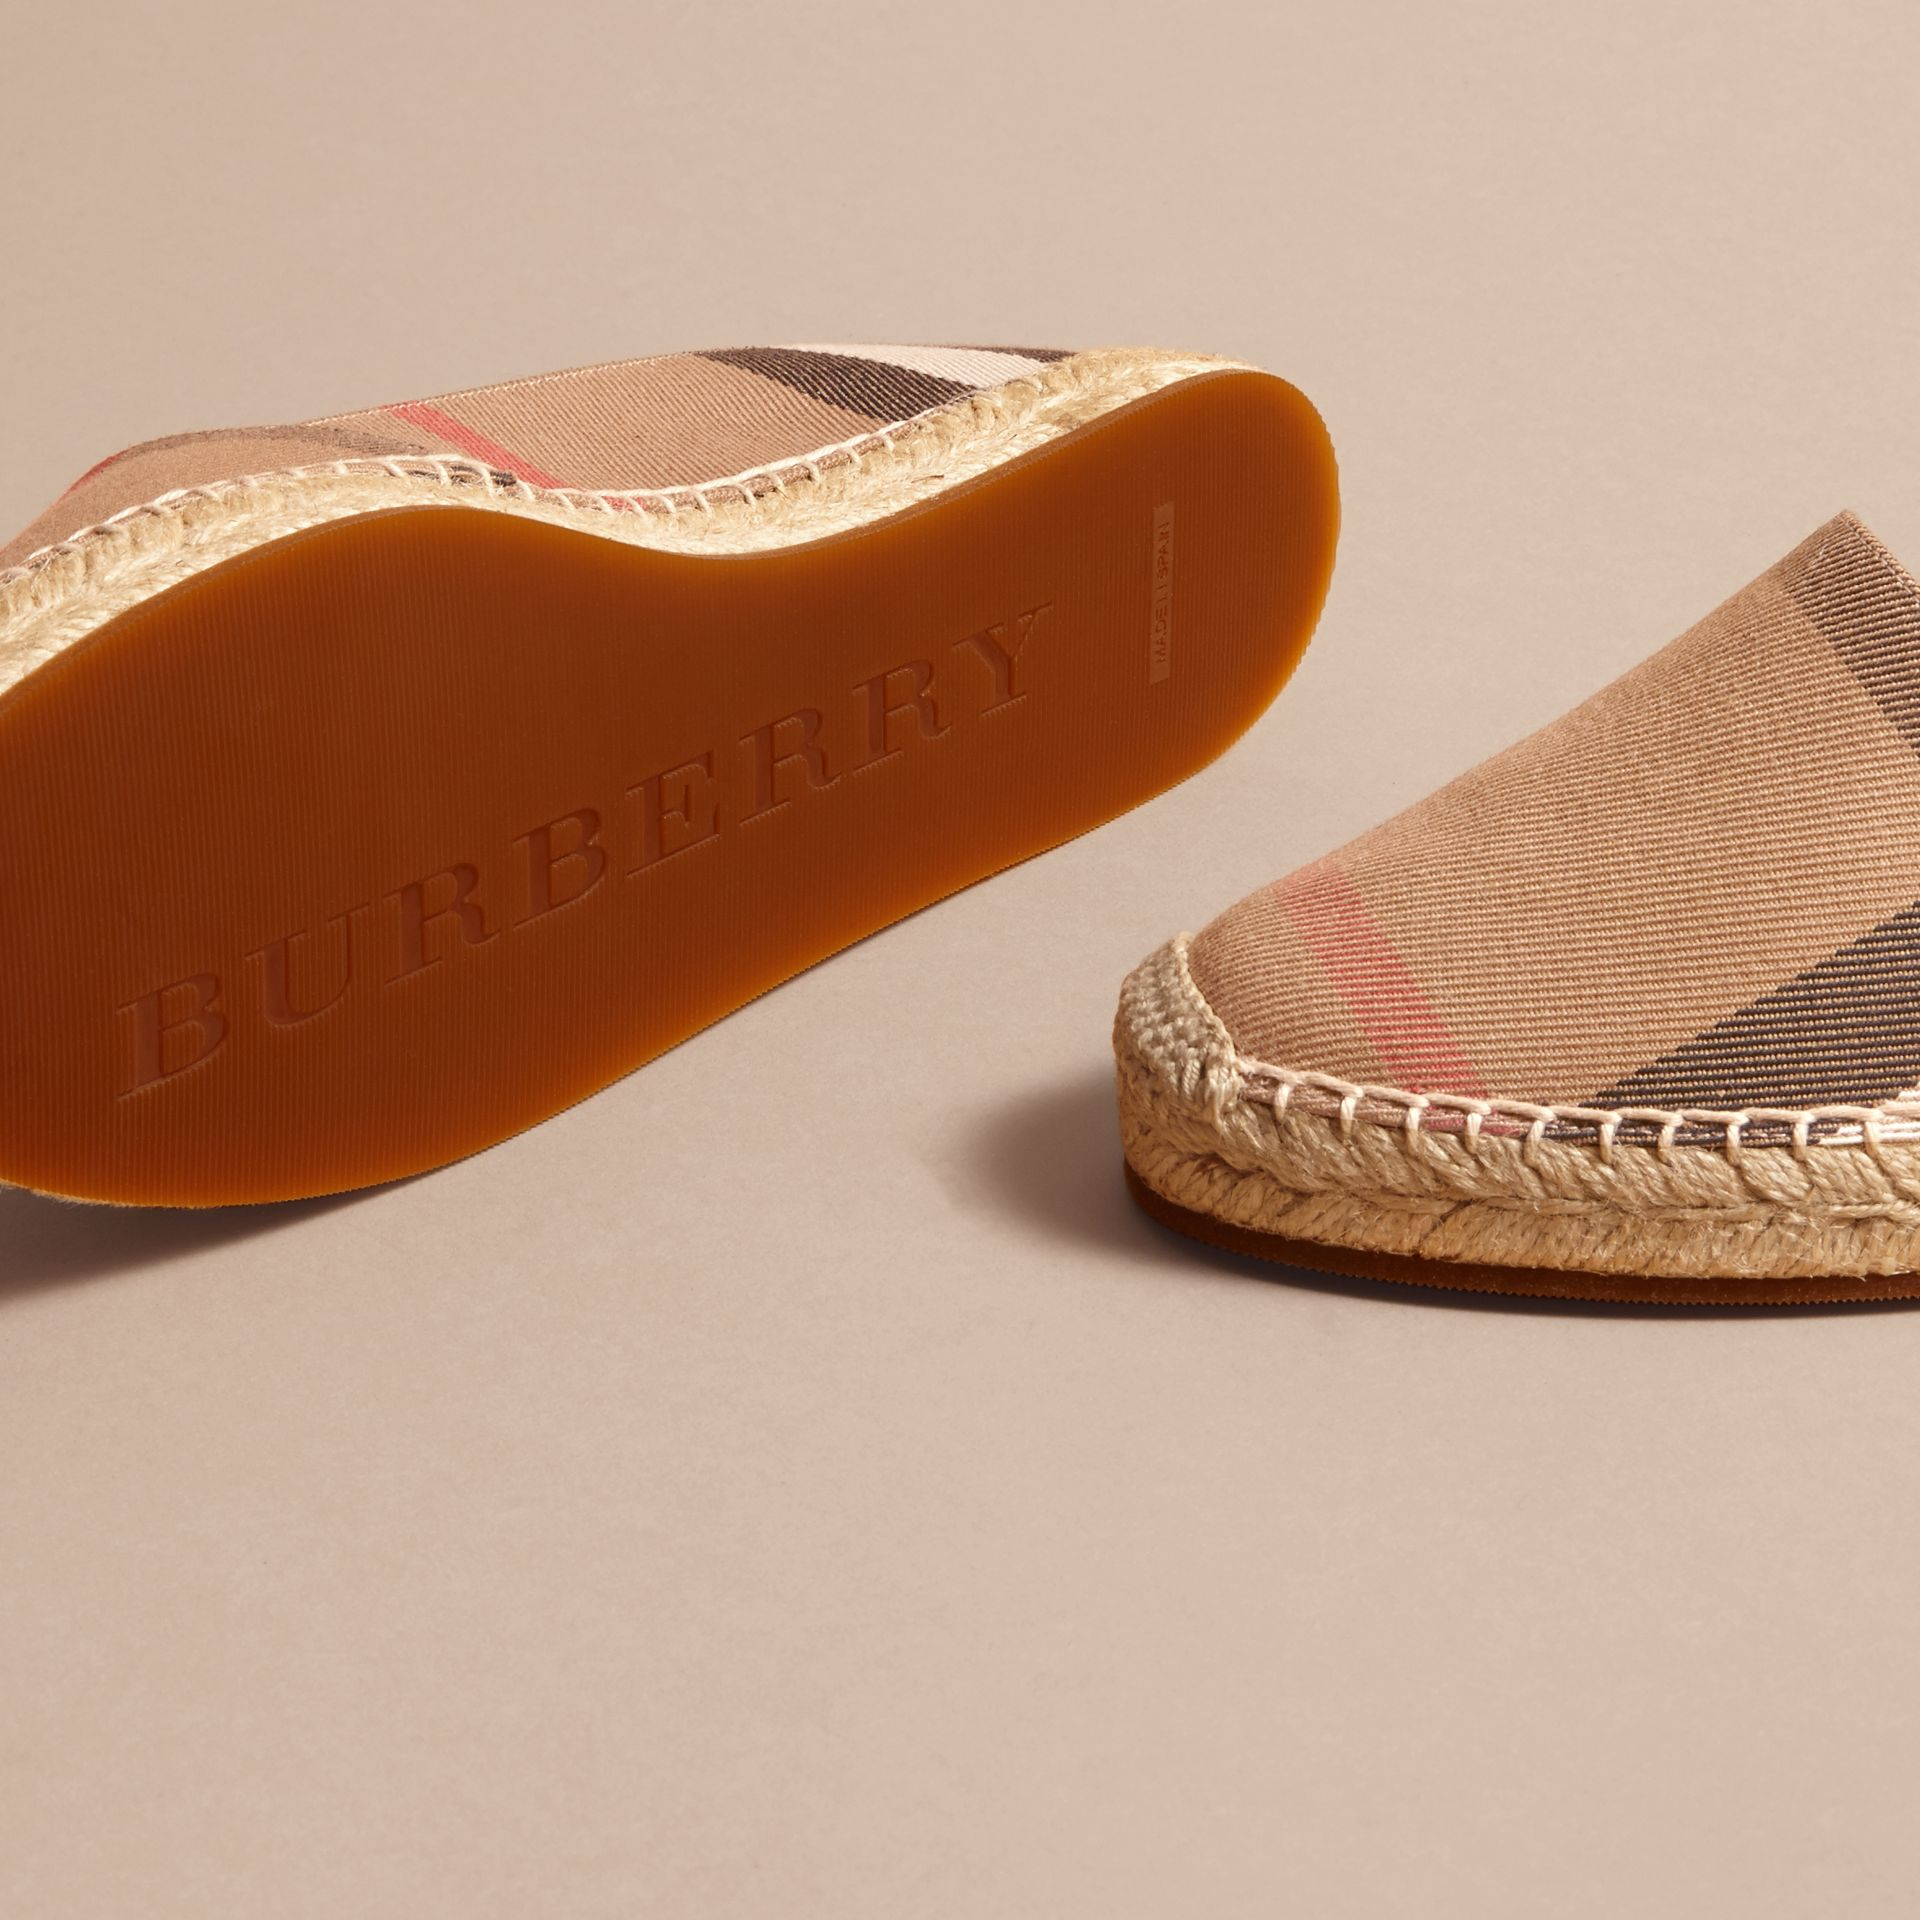 Leather Trim Canvas Check Espadrilles in Classic - Women | Burberry Canada - gallery image 4